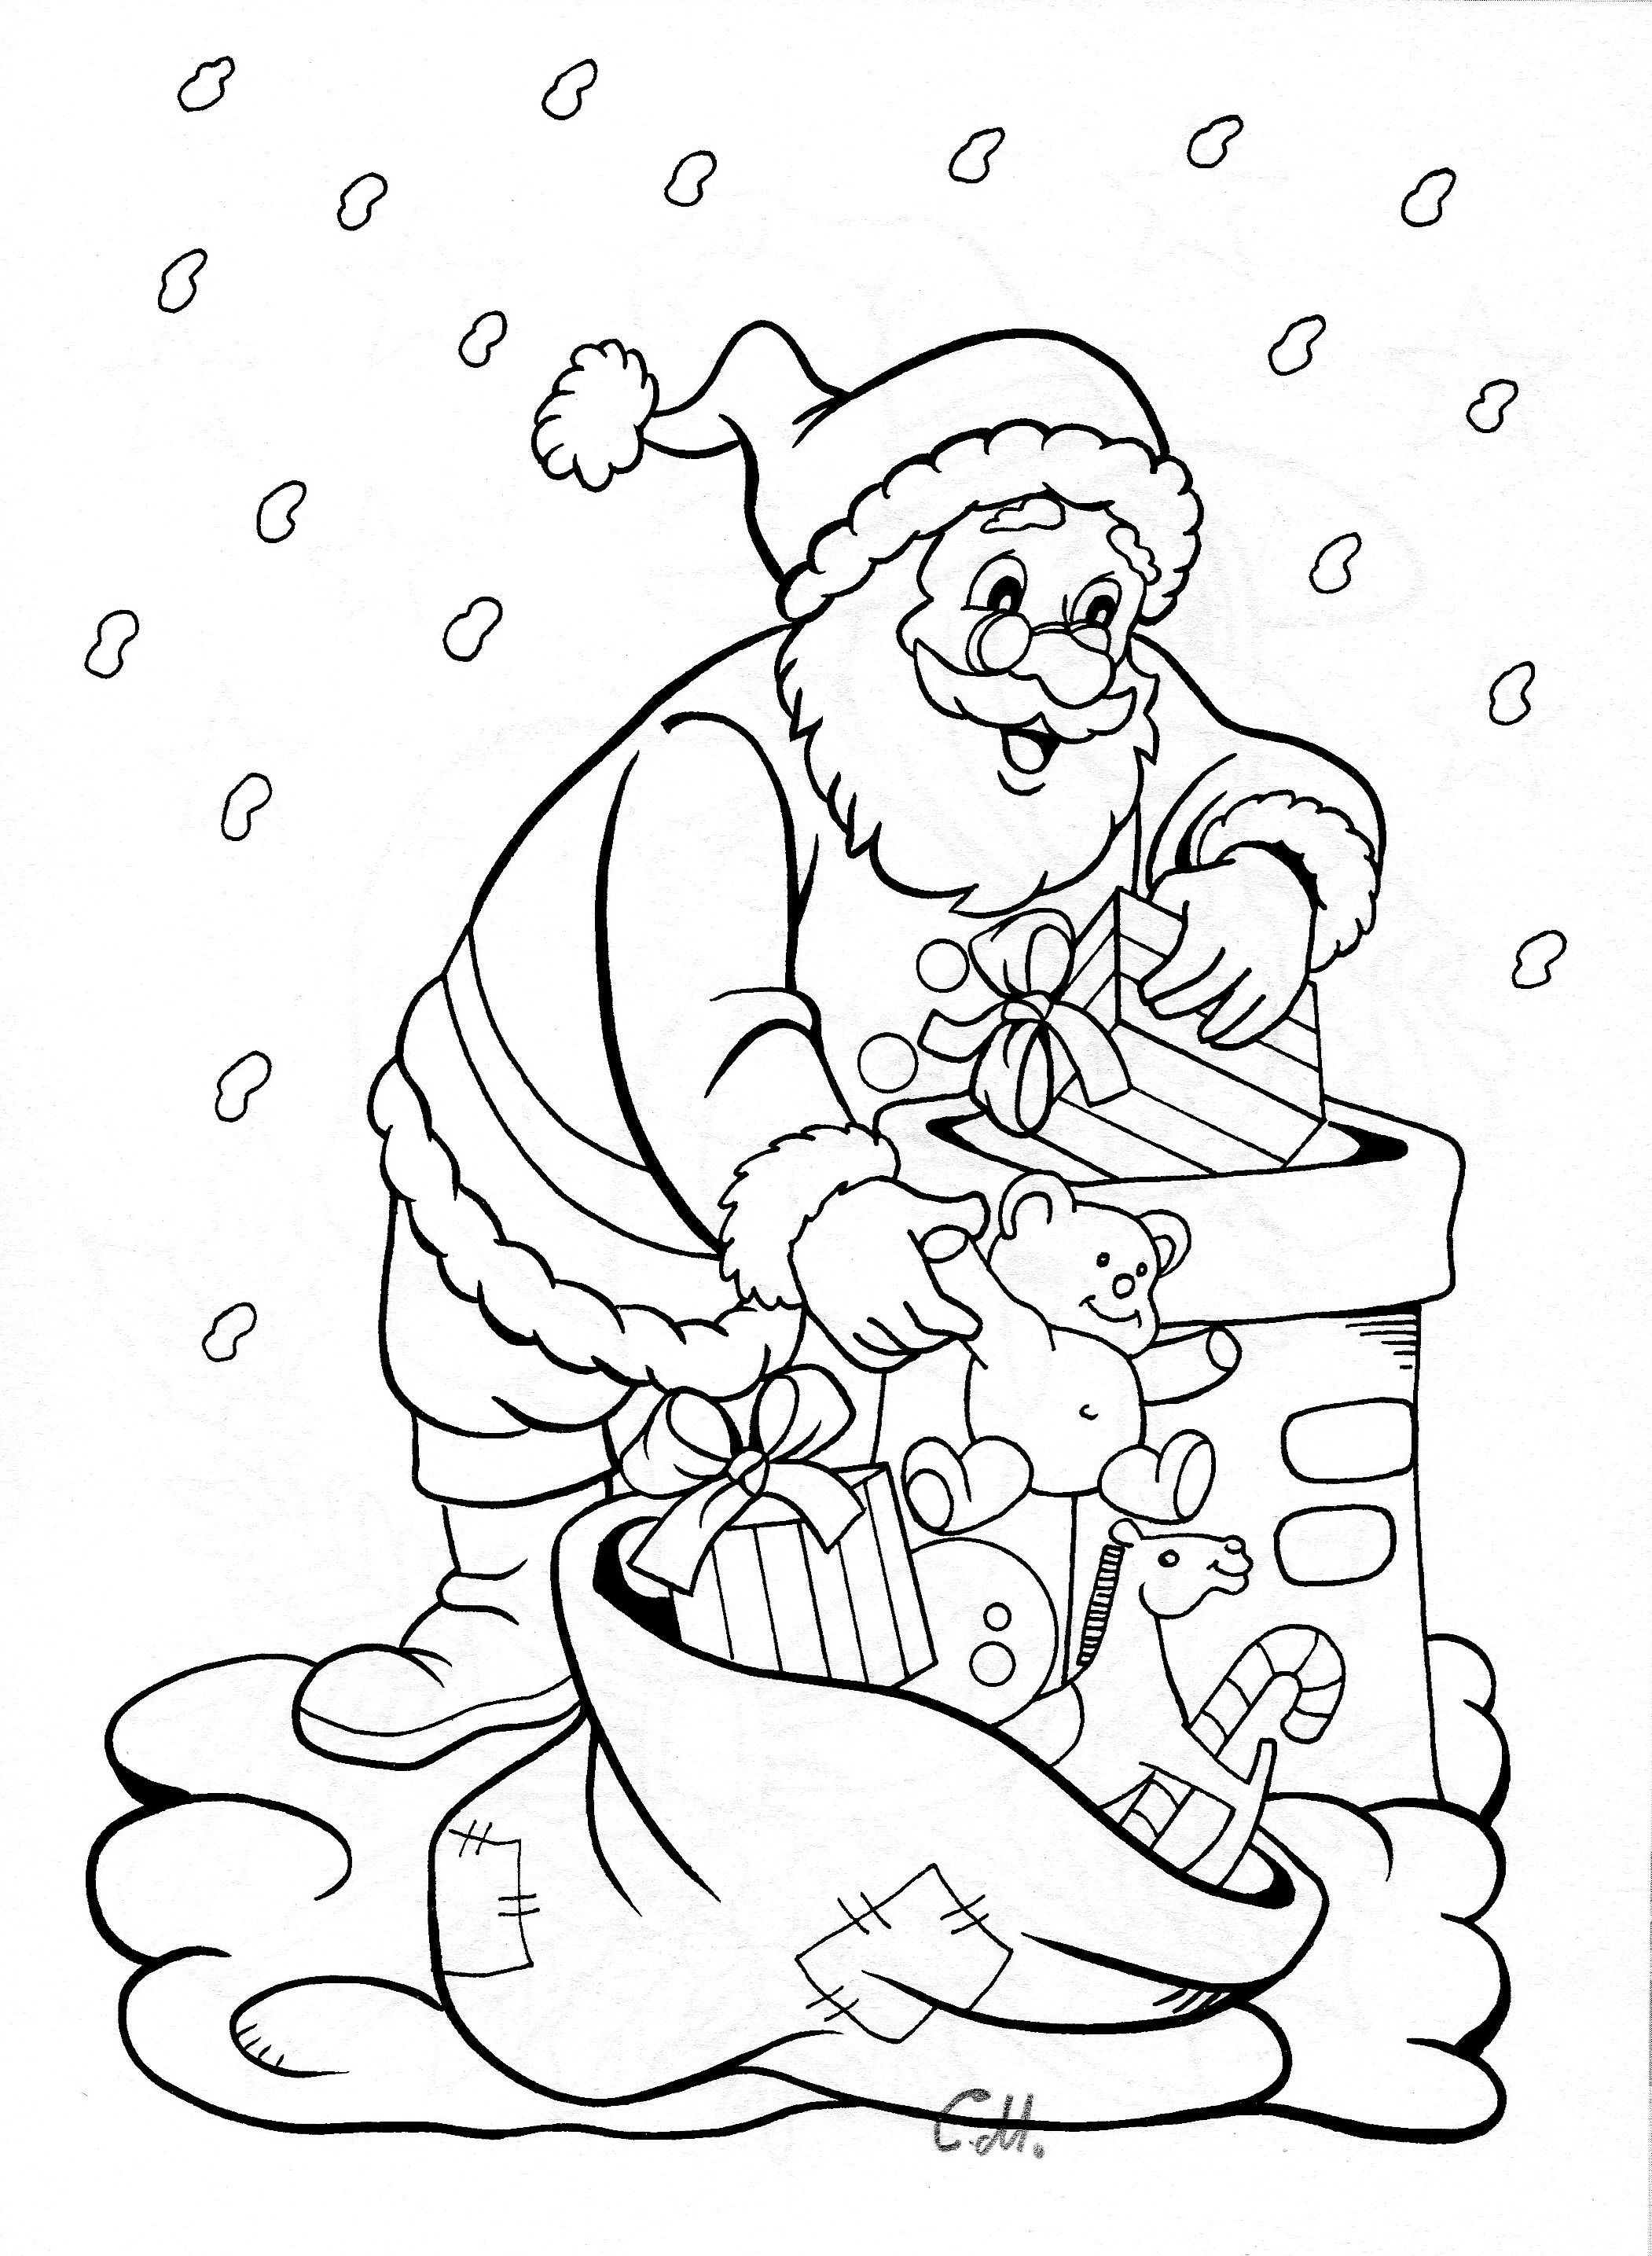 Santa Chimney Coloring Page With Climbing Down And Reindeer Pinterest